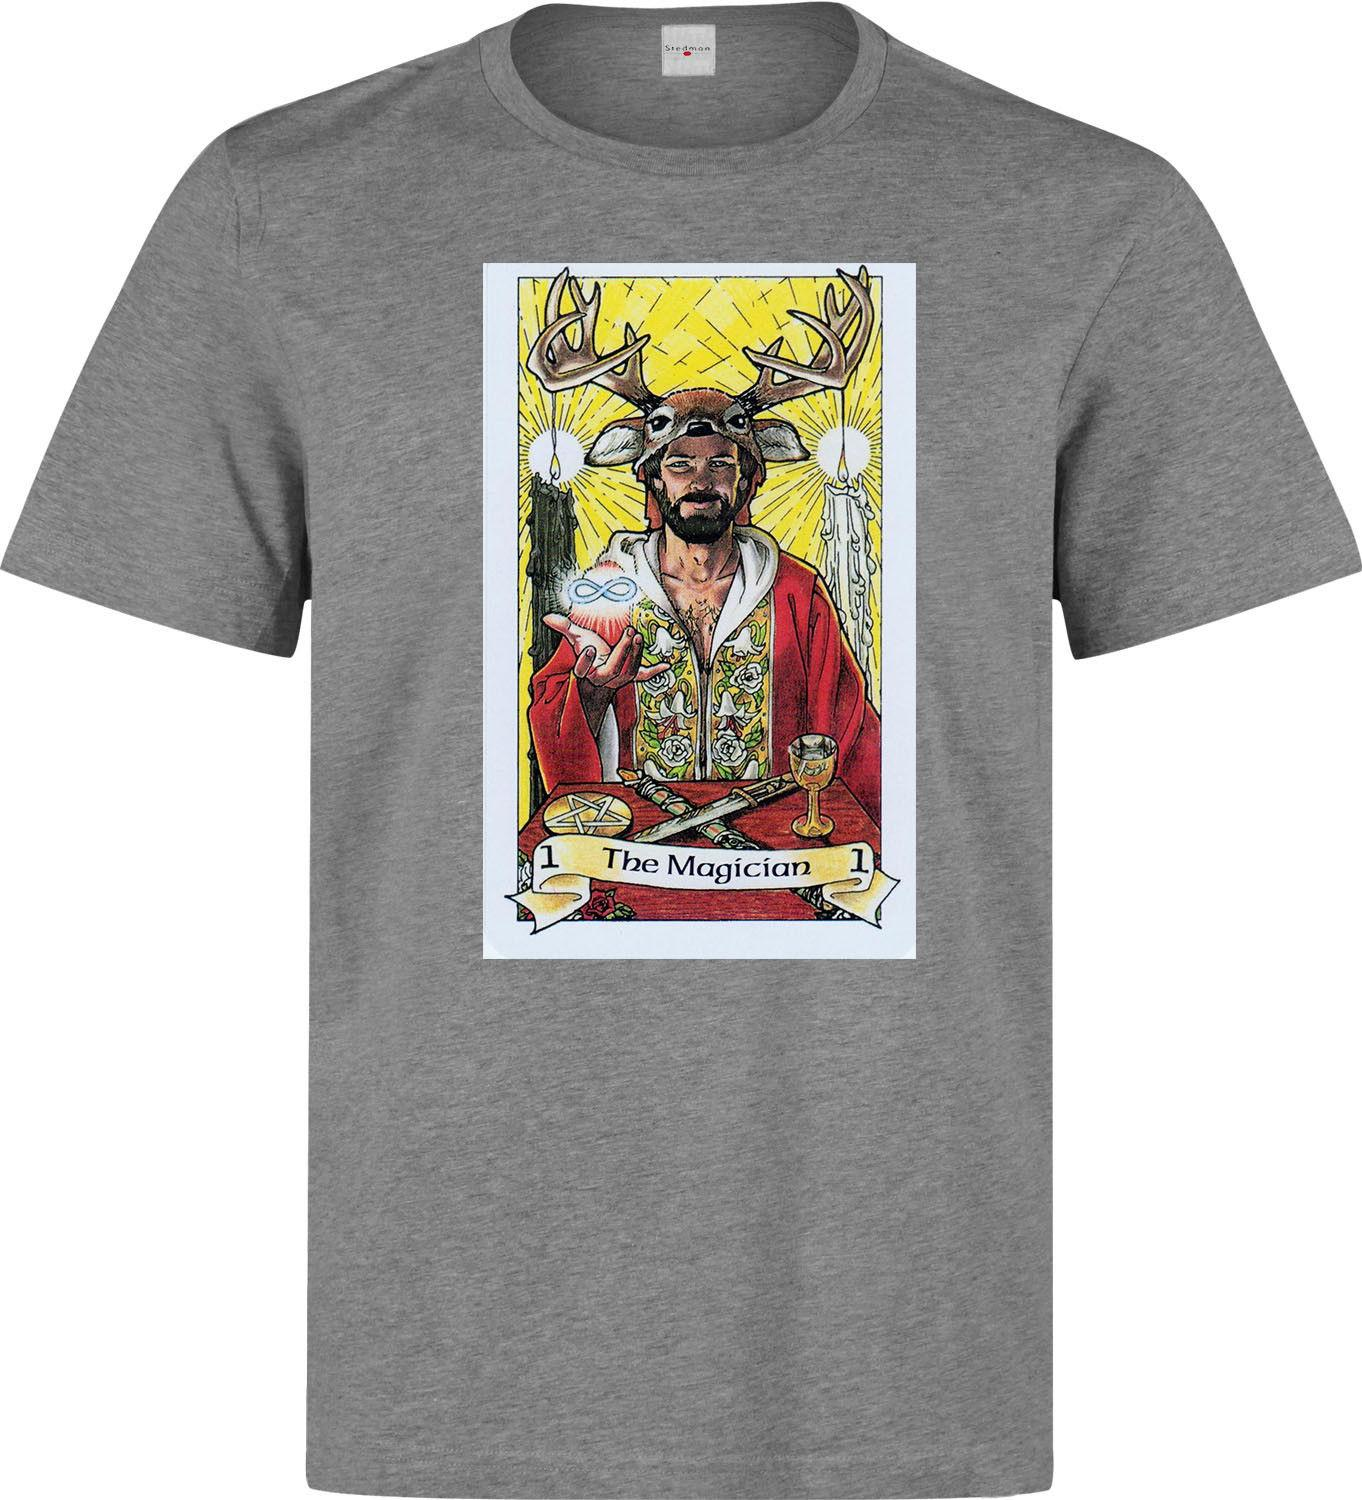 The Magician Tarot Card Art Logo Men s (woman s available) grey t shirt Men  Women Unisex Fashion tshirt Free Shipping black